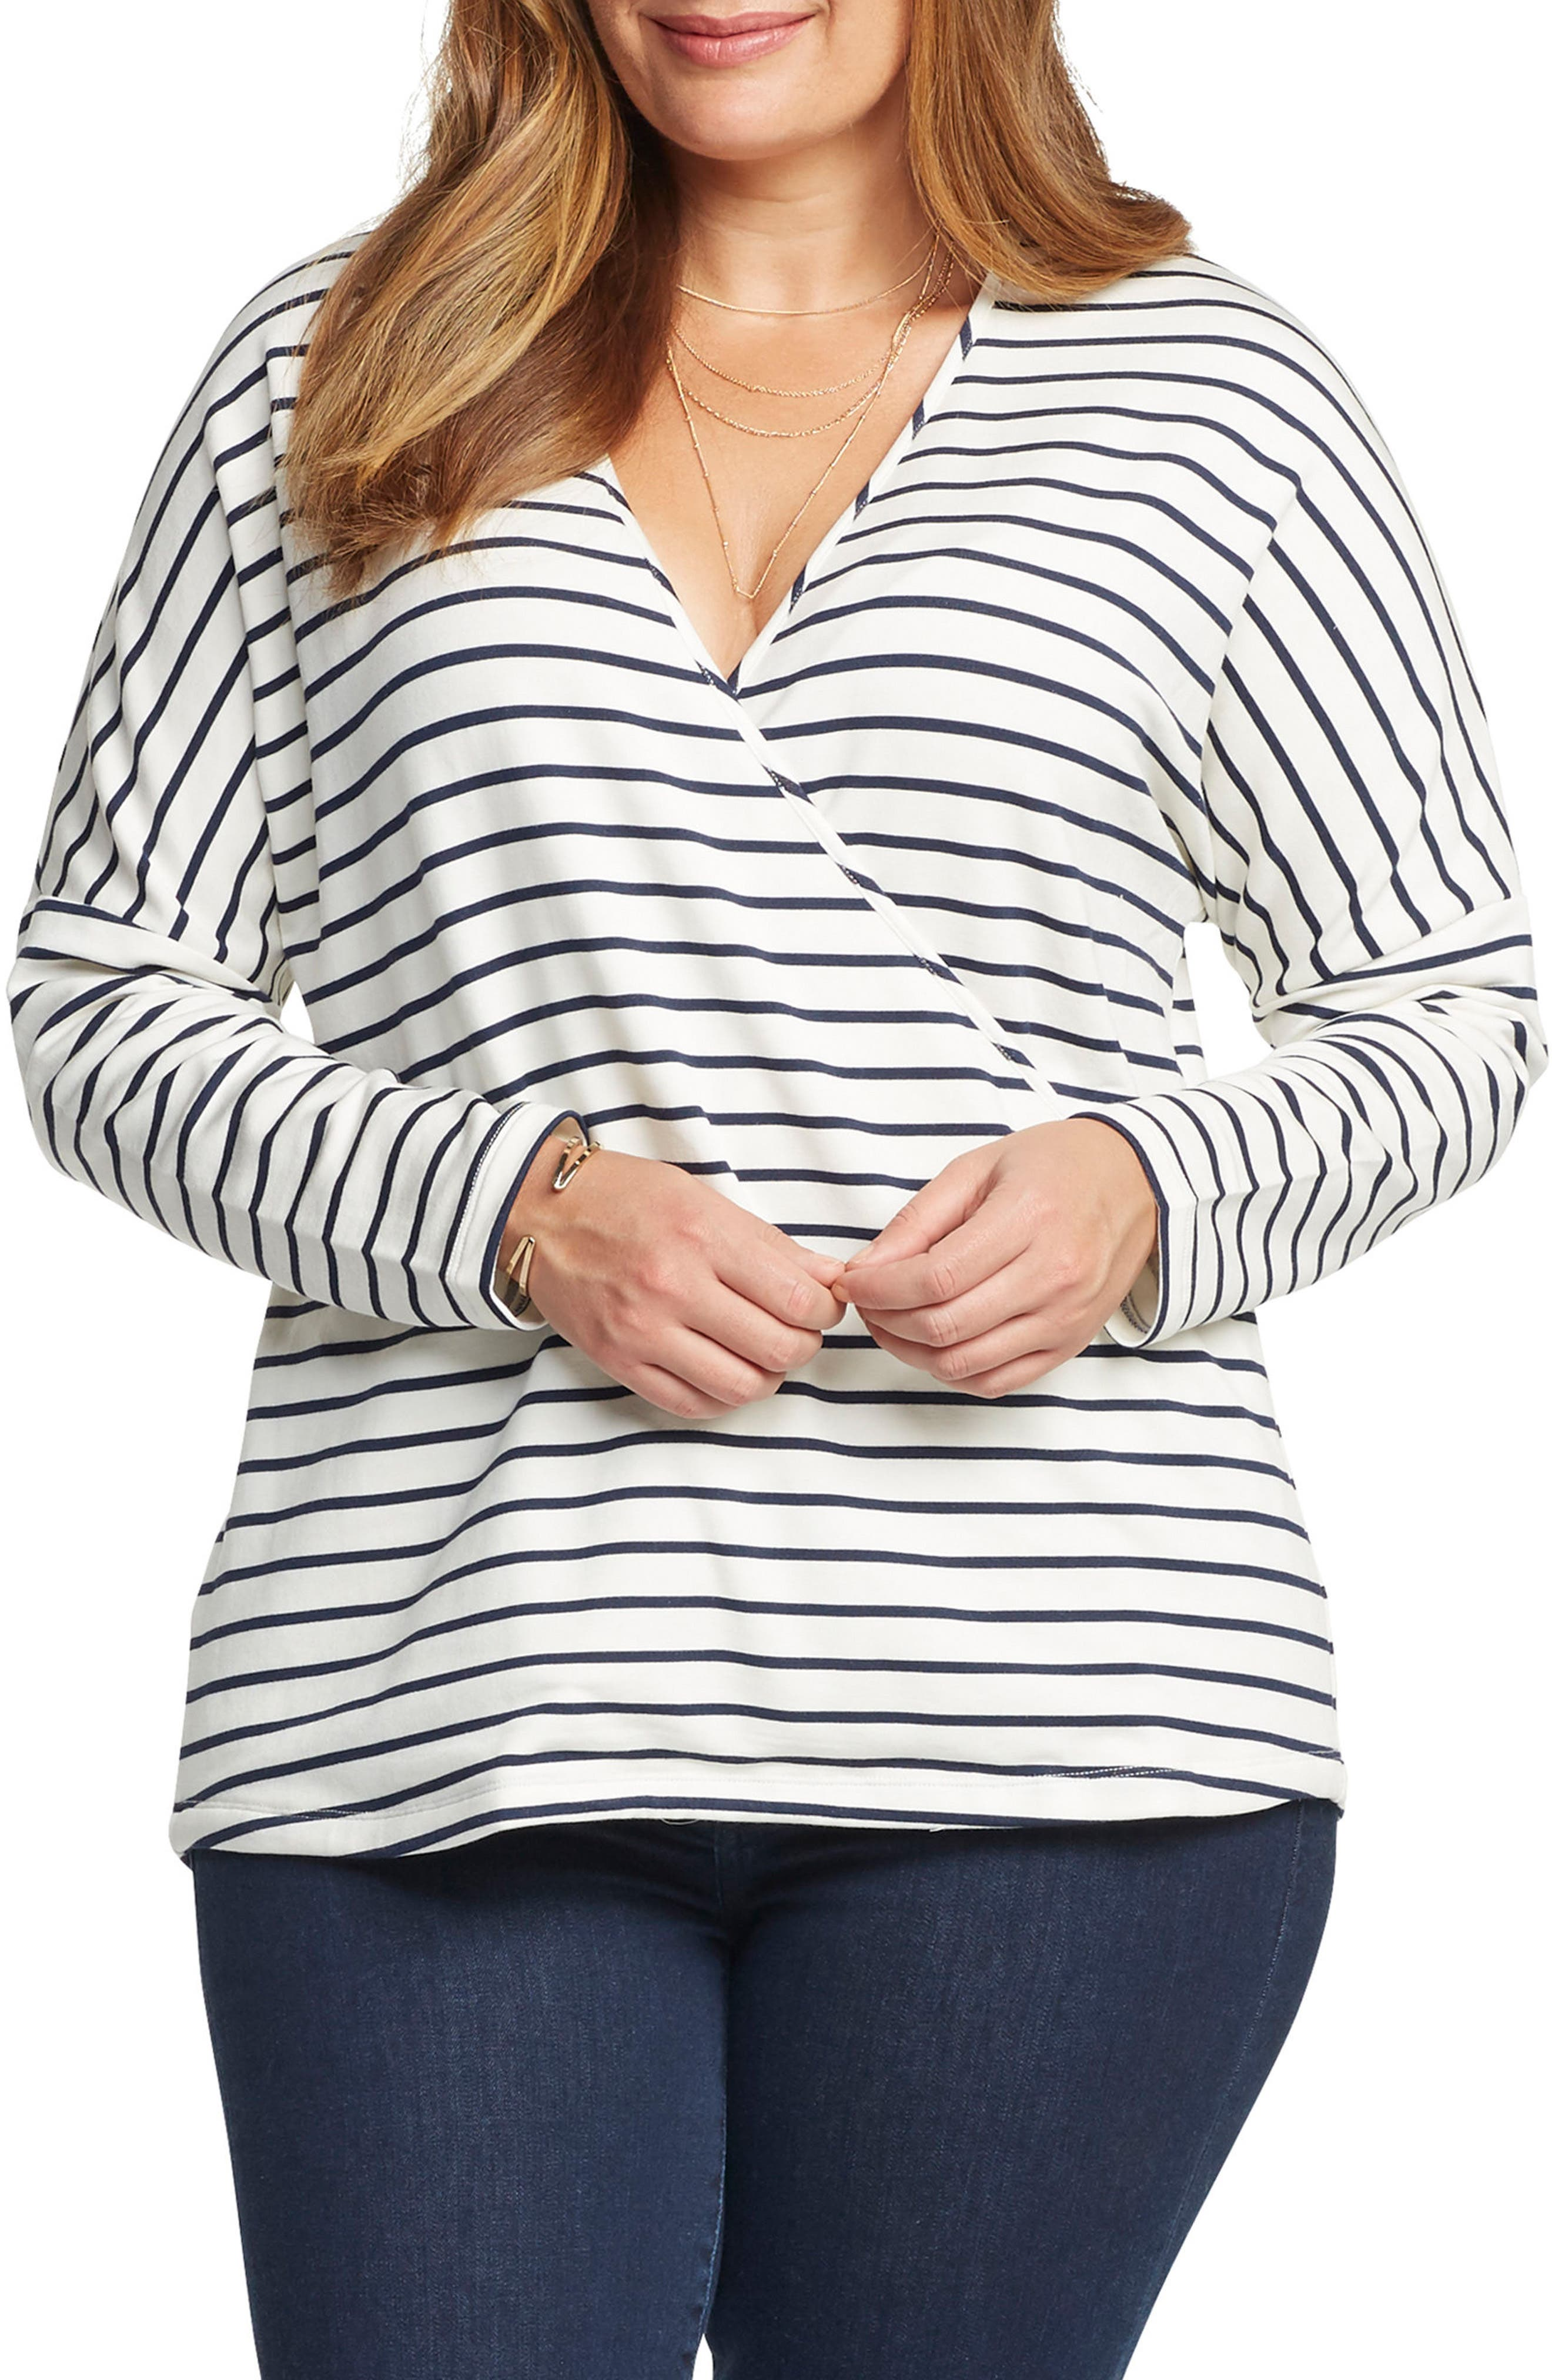 'Julian' Stripe French Terry Surplice Top,                             Main thumbnail 1, color,                             White/ Navy